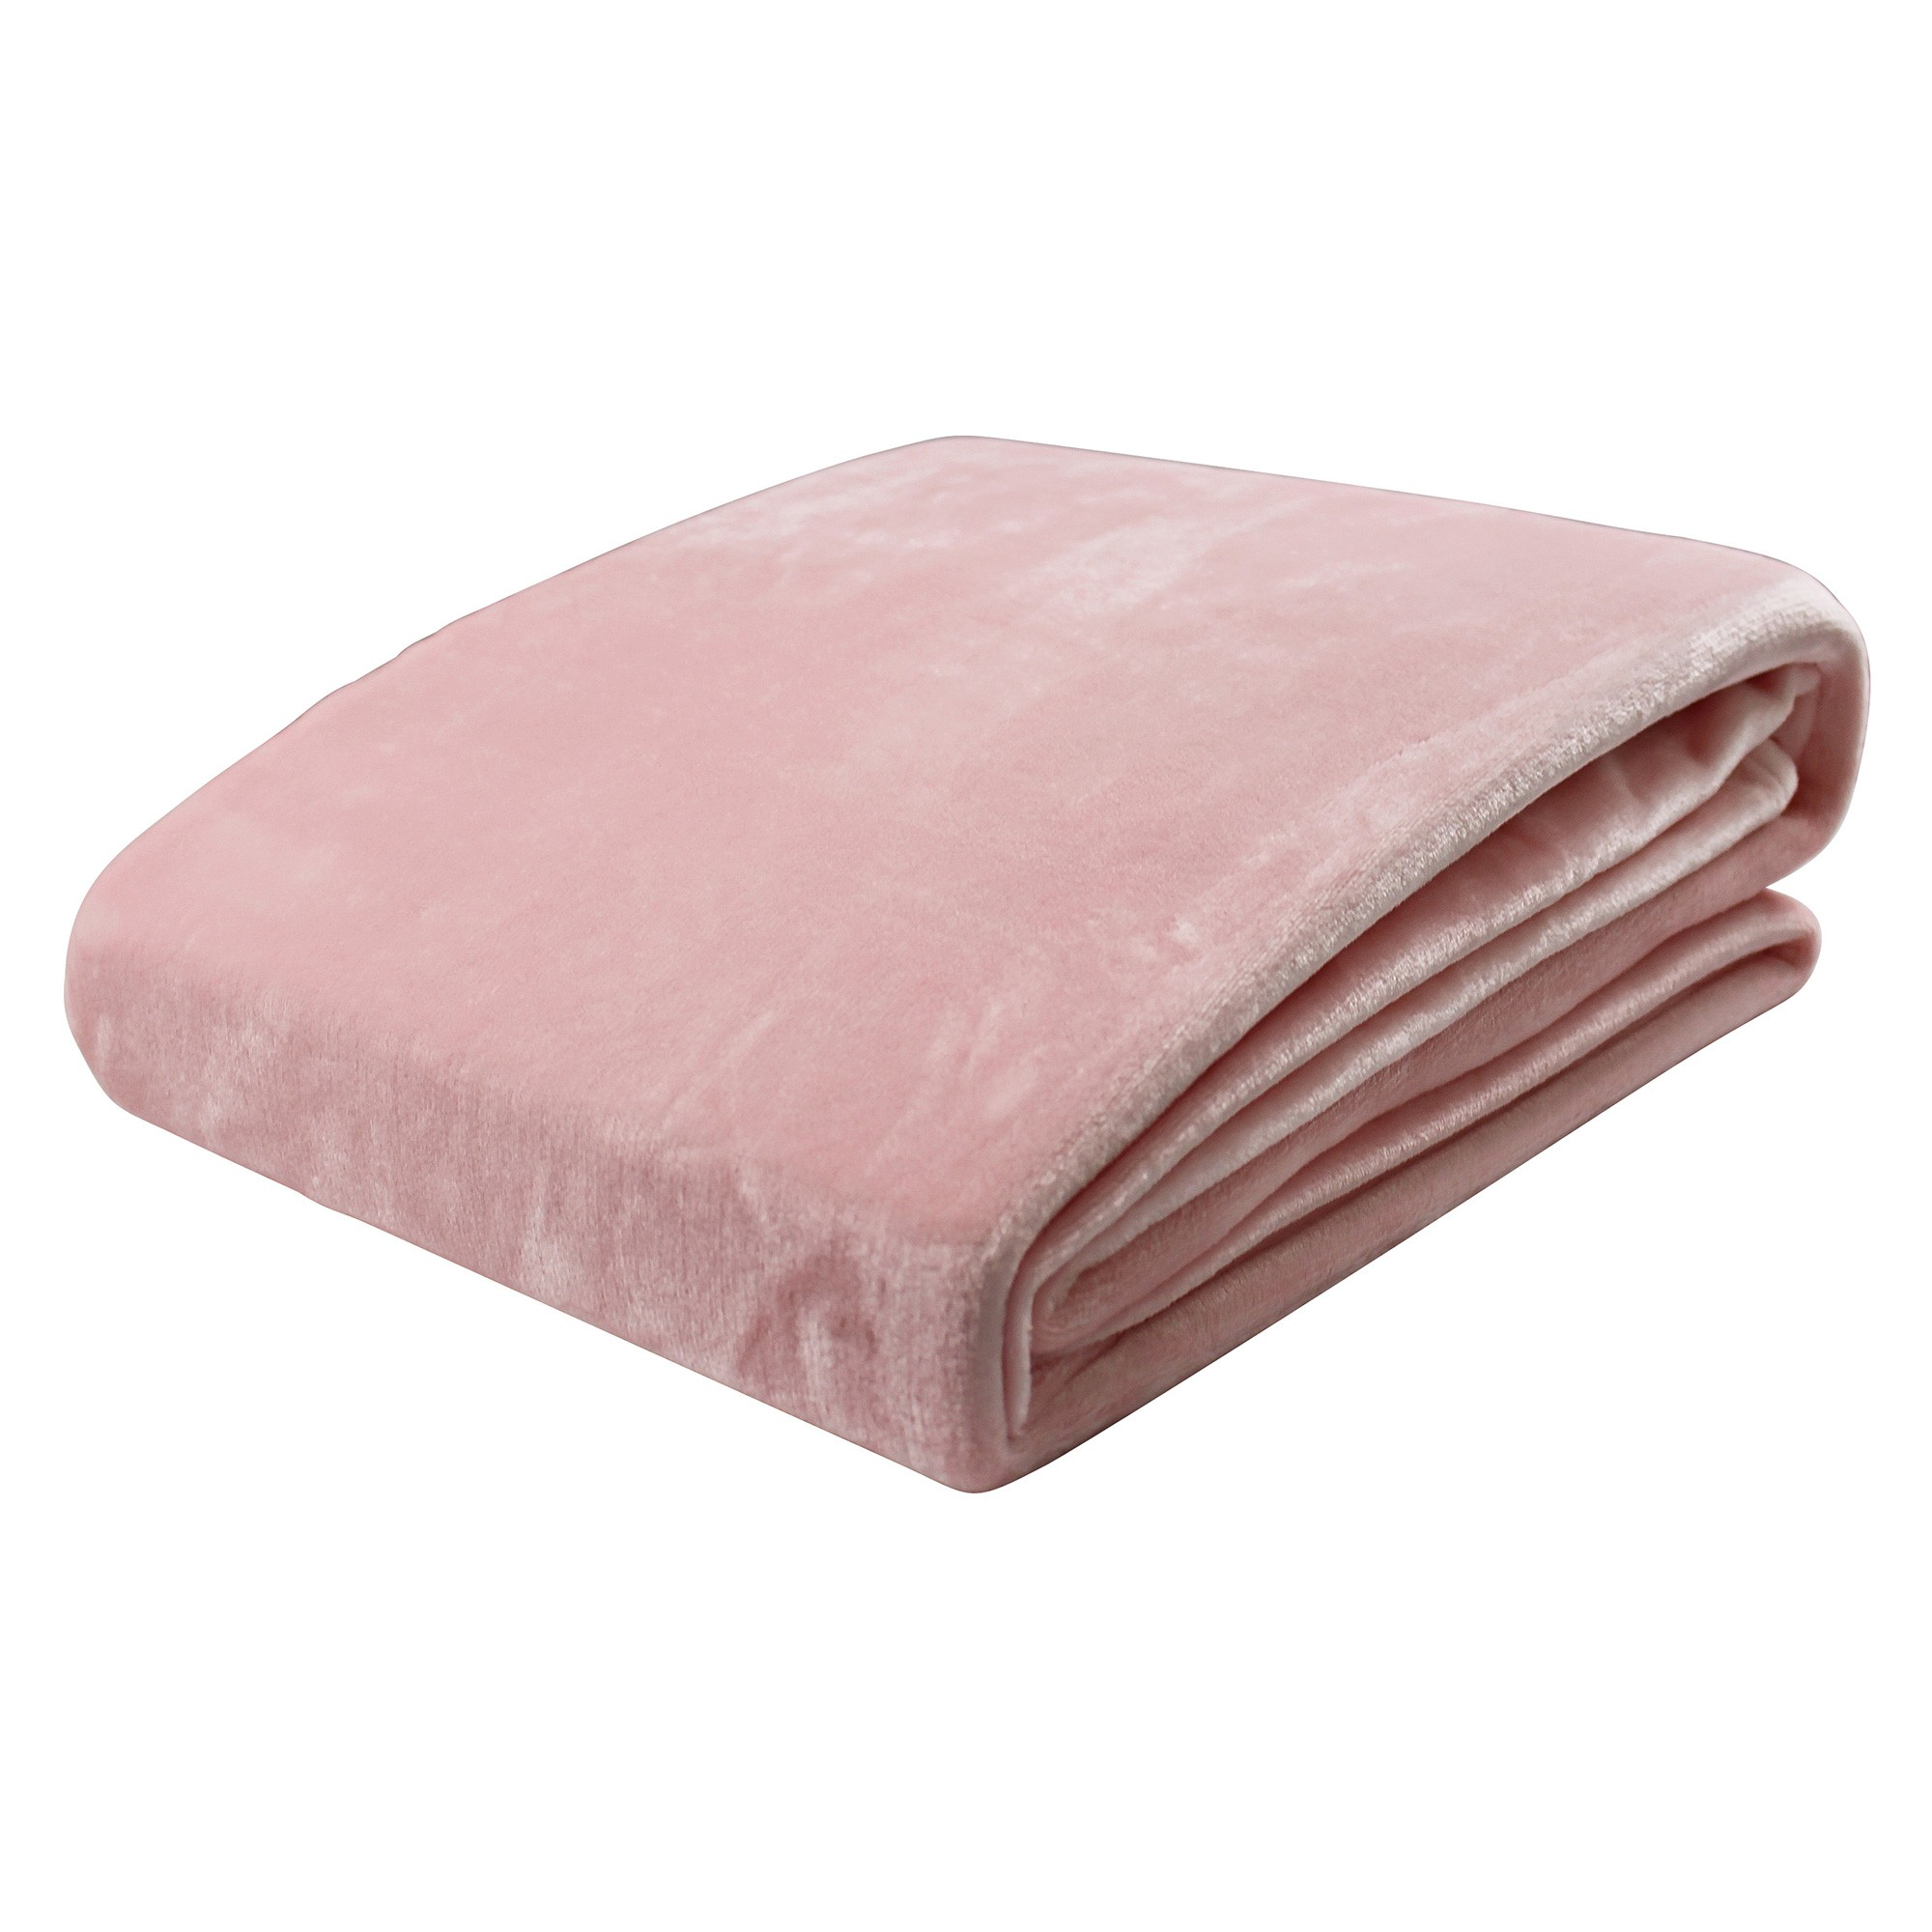 Odyssey Living Super Soft Blanket, Queen / King, Primrose